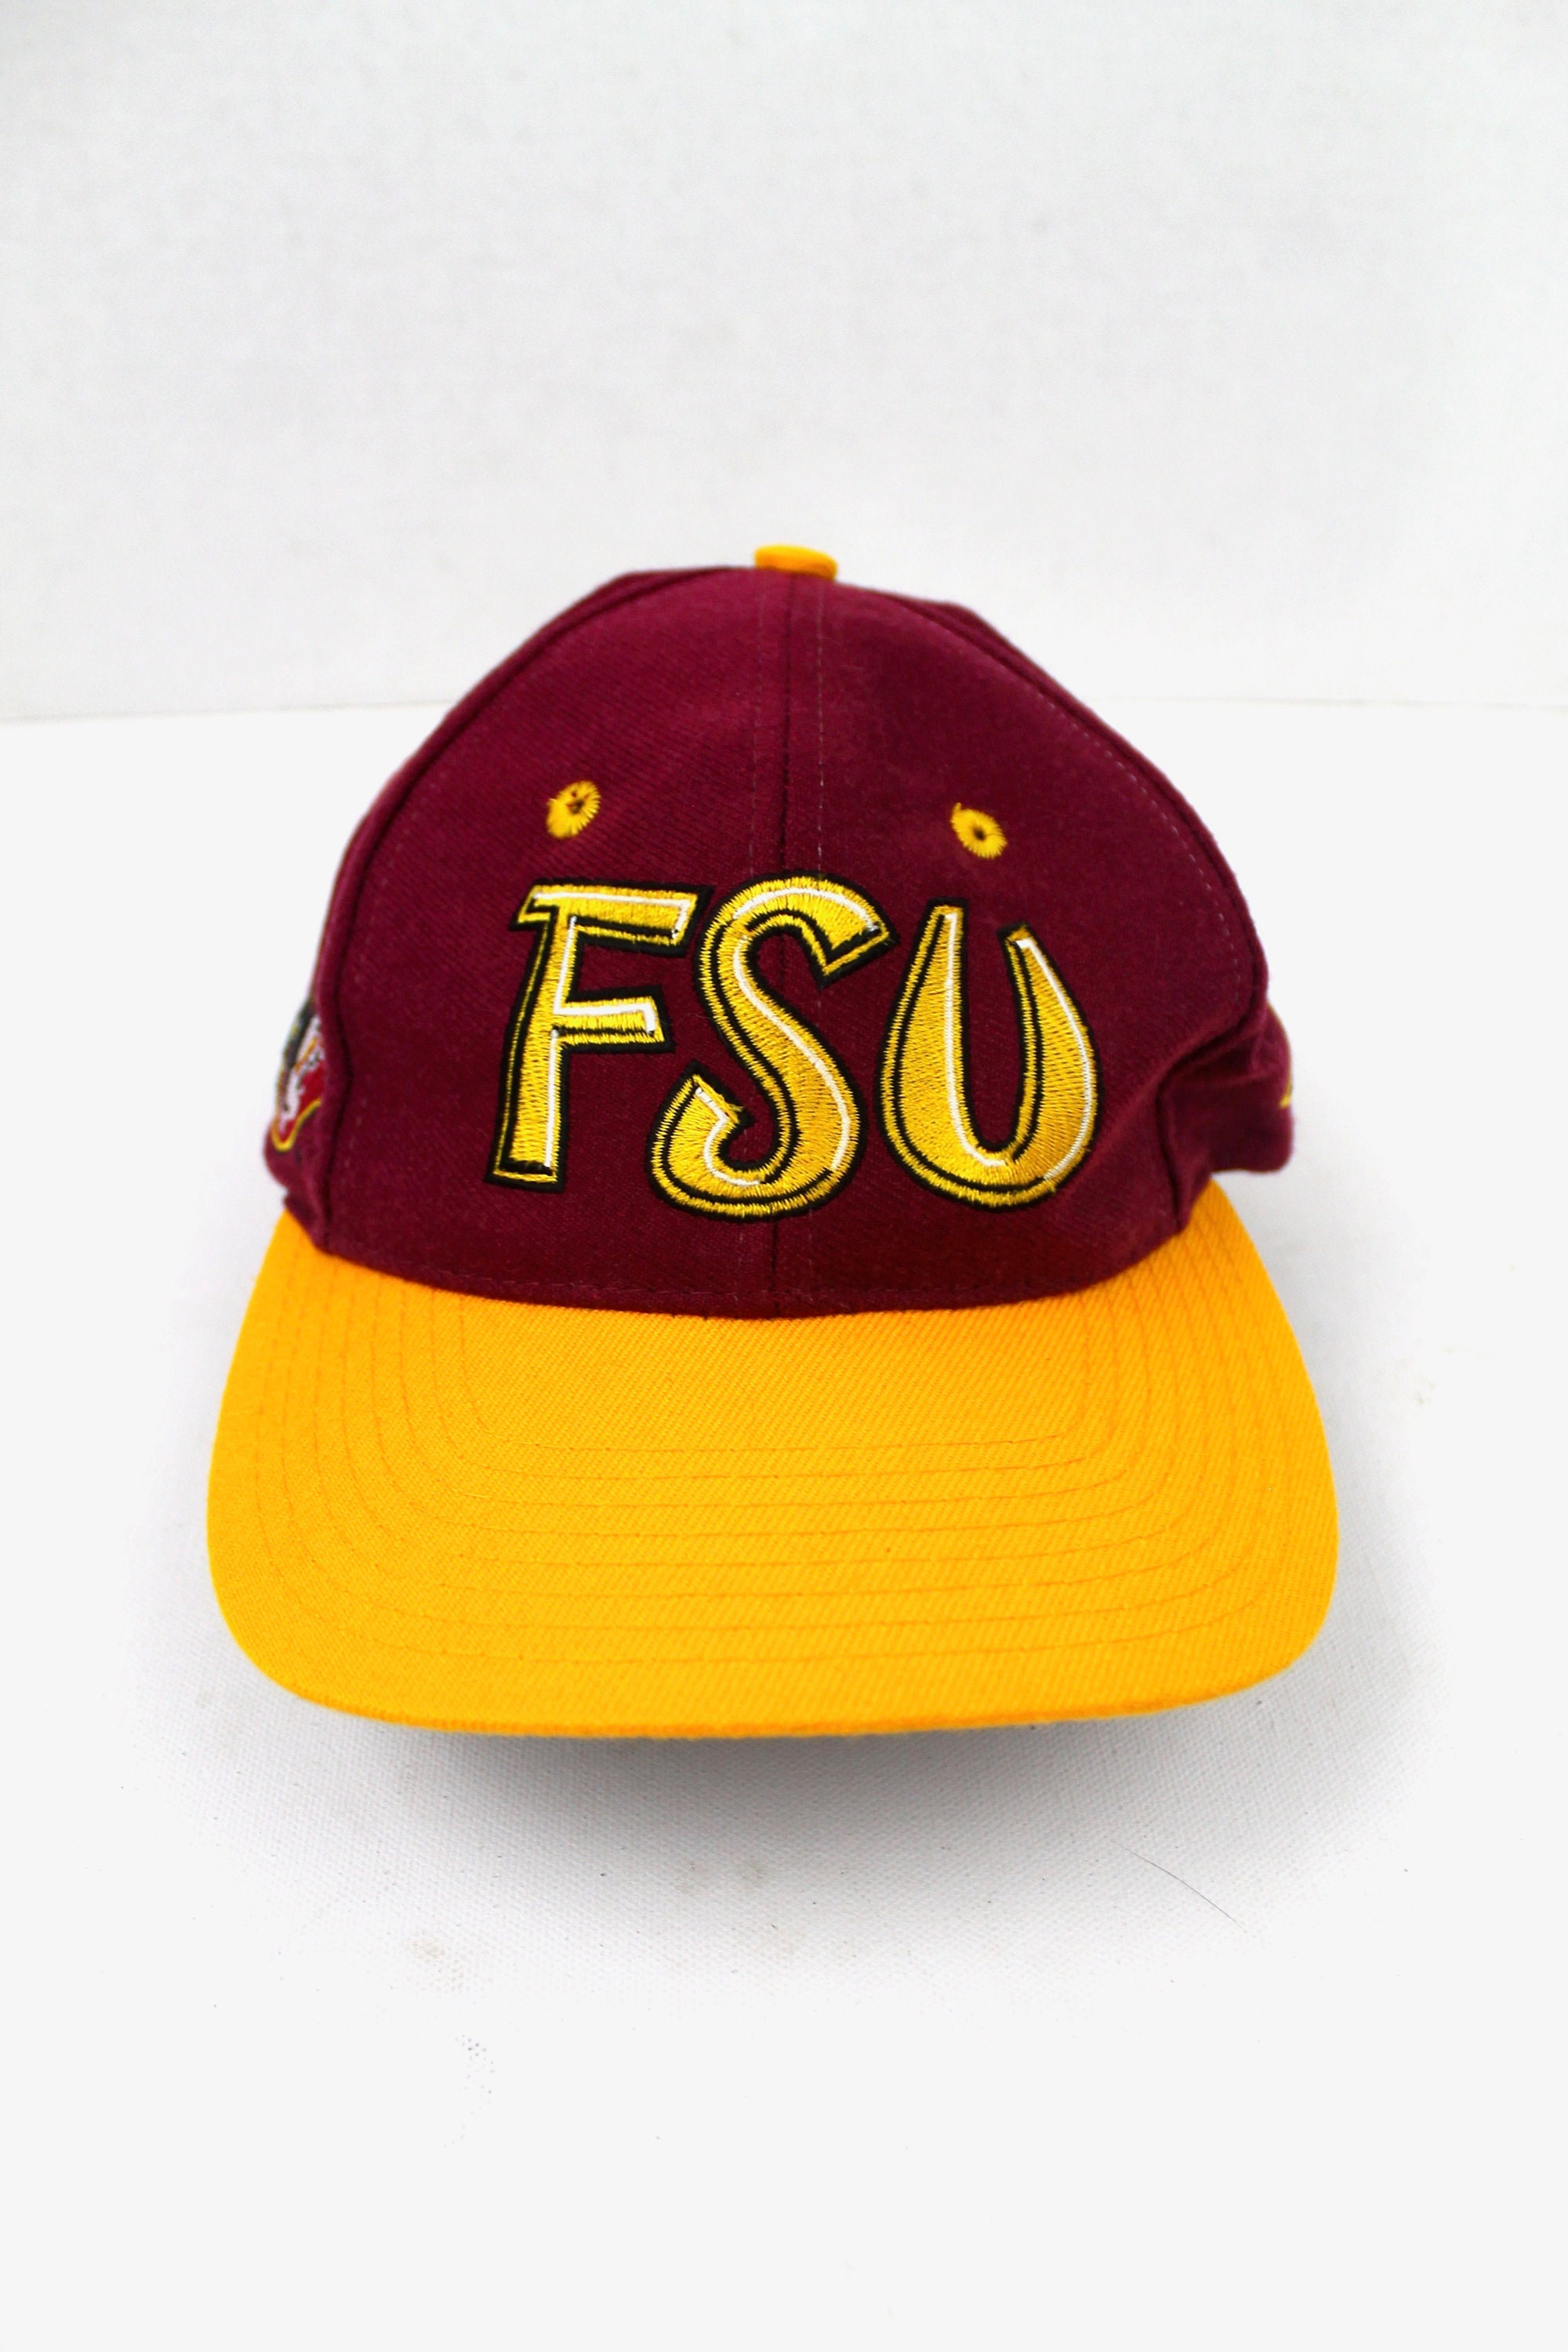 huge selection of 69d3c edce3 90s Vintage FSU Snapback Hat Florida State University   Etsy